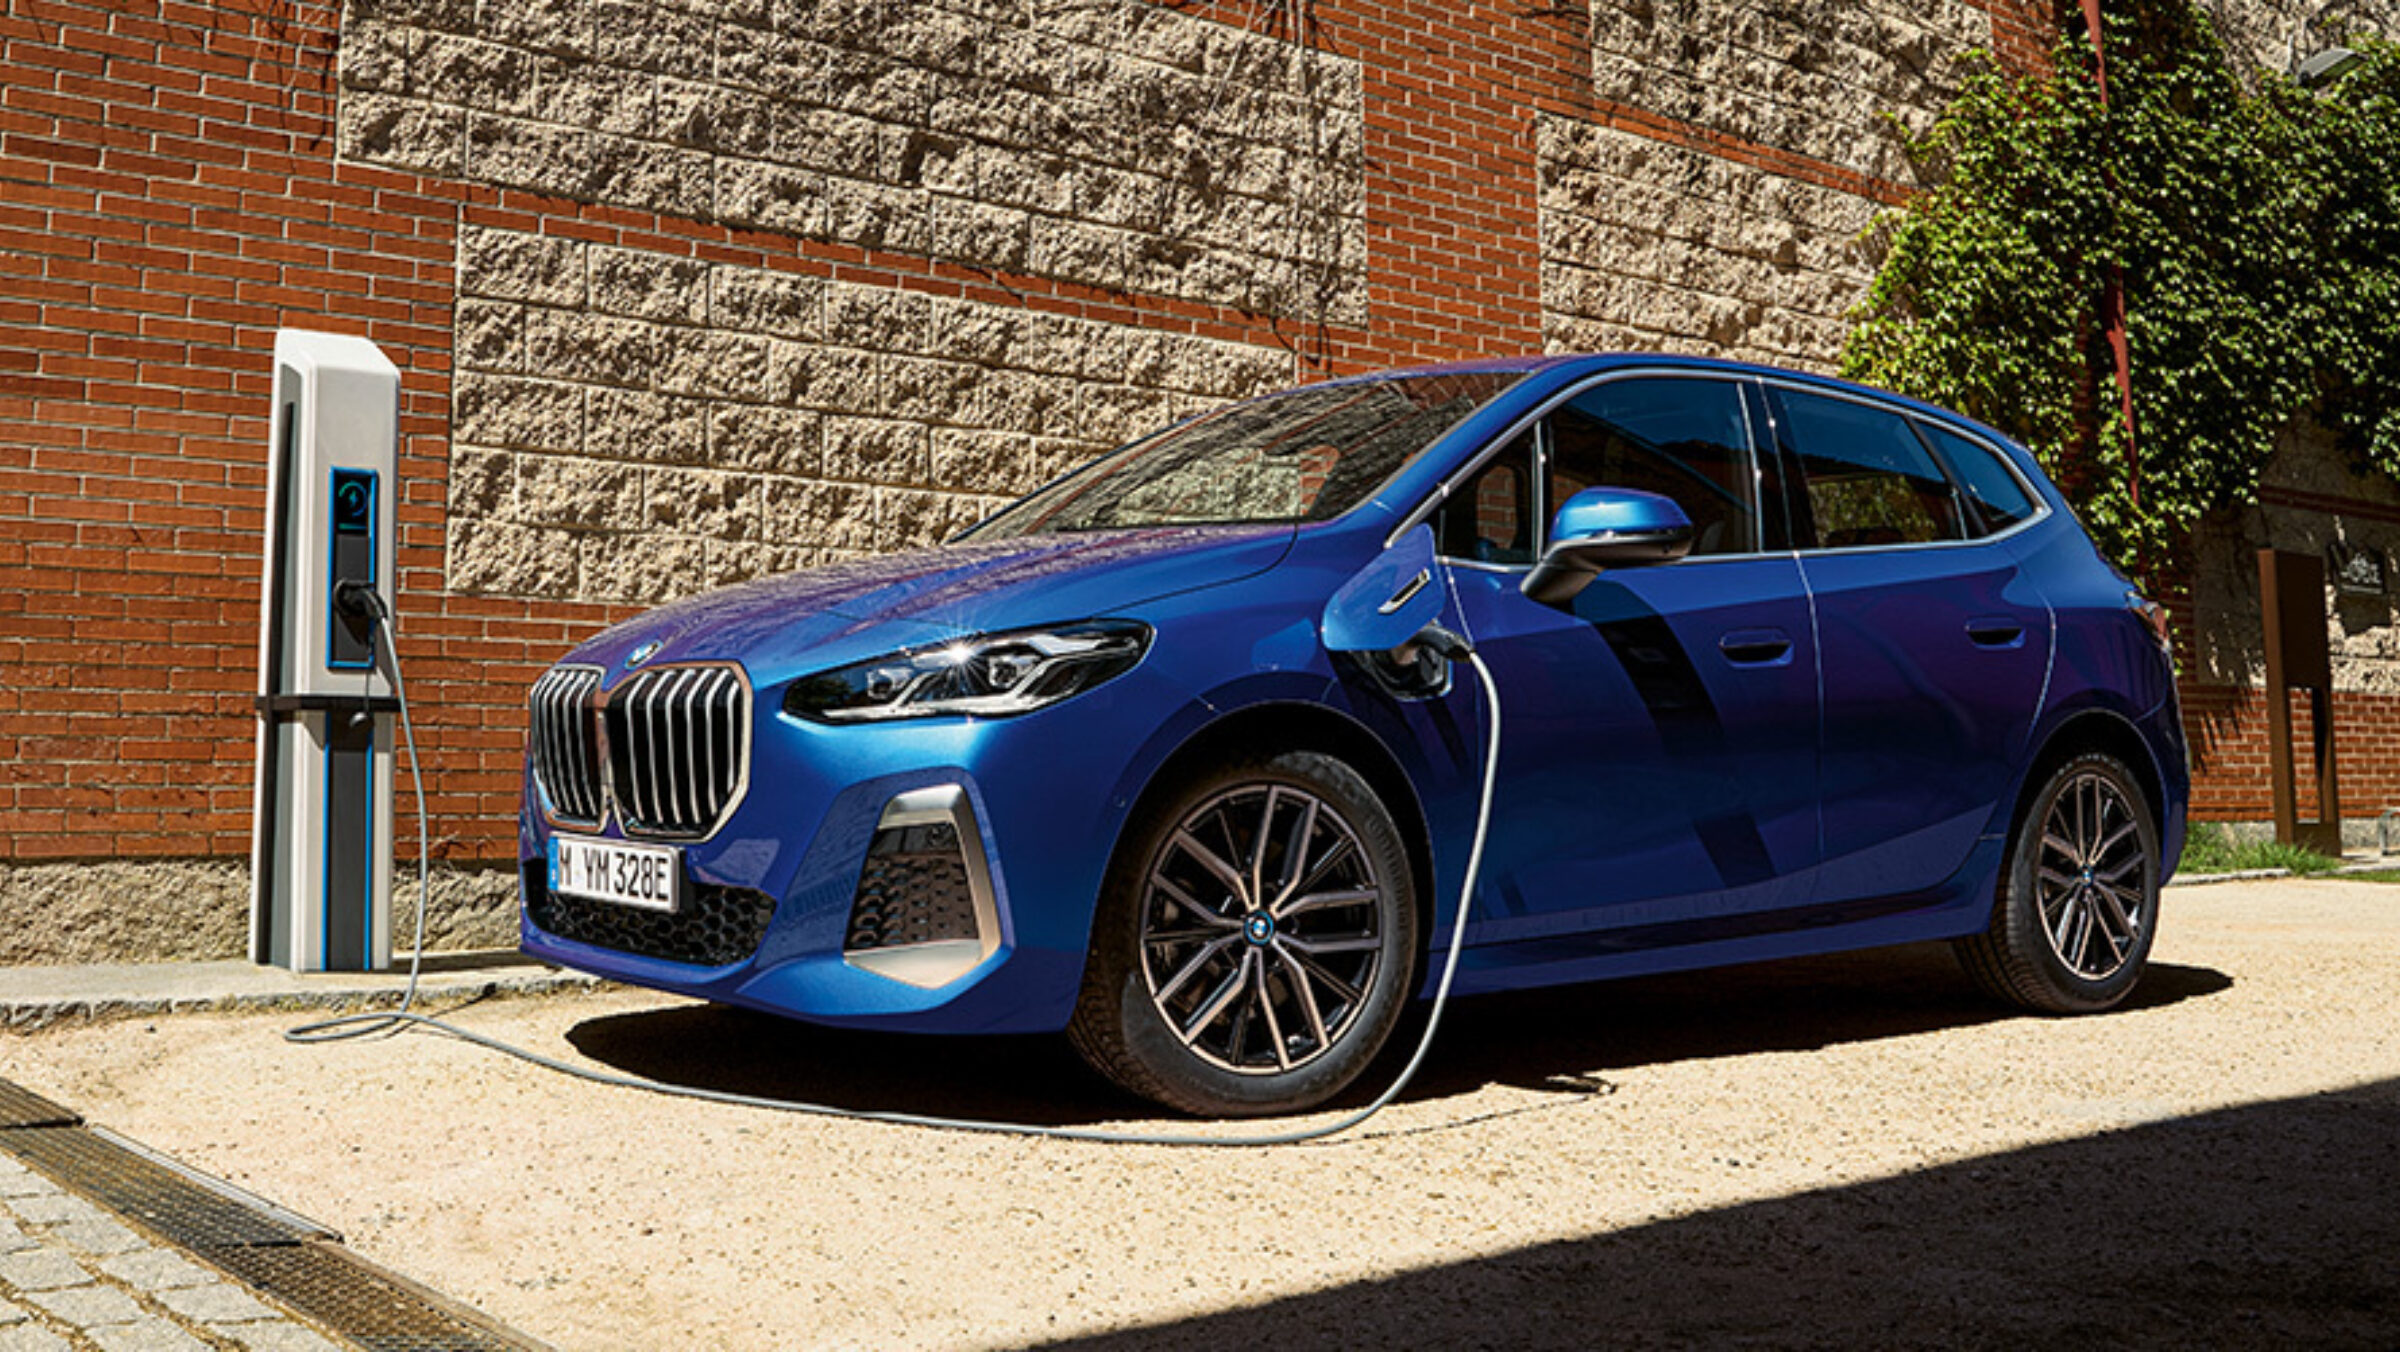 Bmw 2 series active tourer onepager ms charging phev mhev